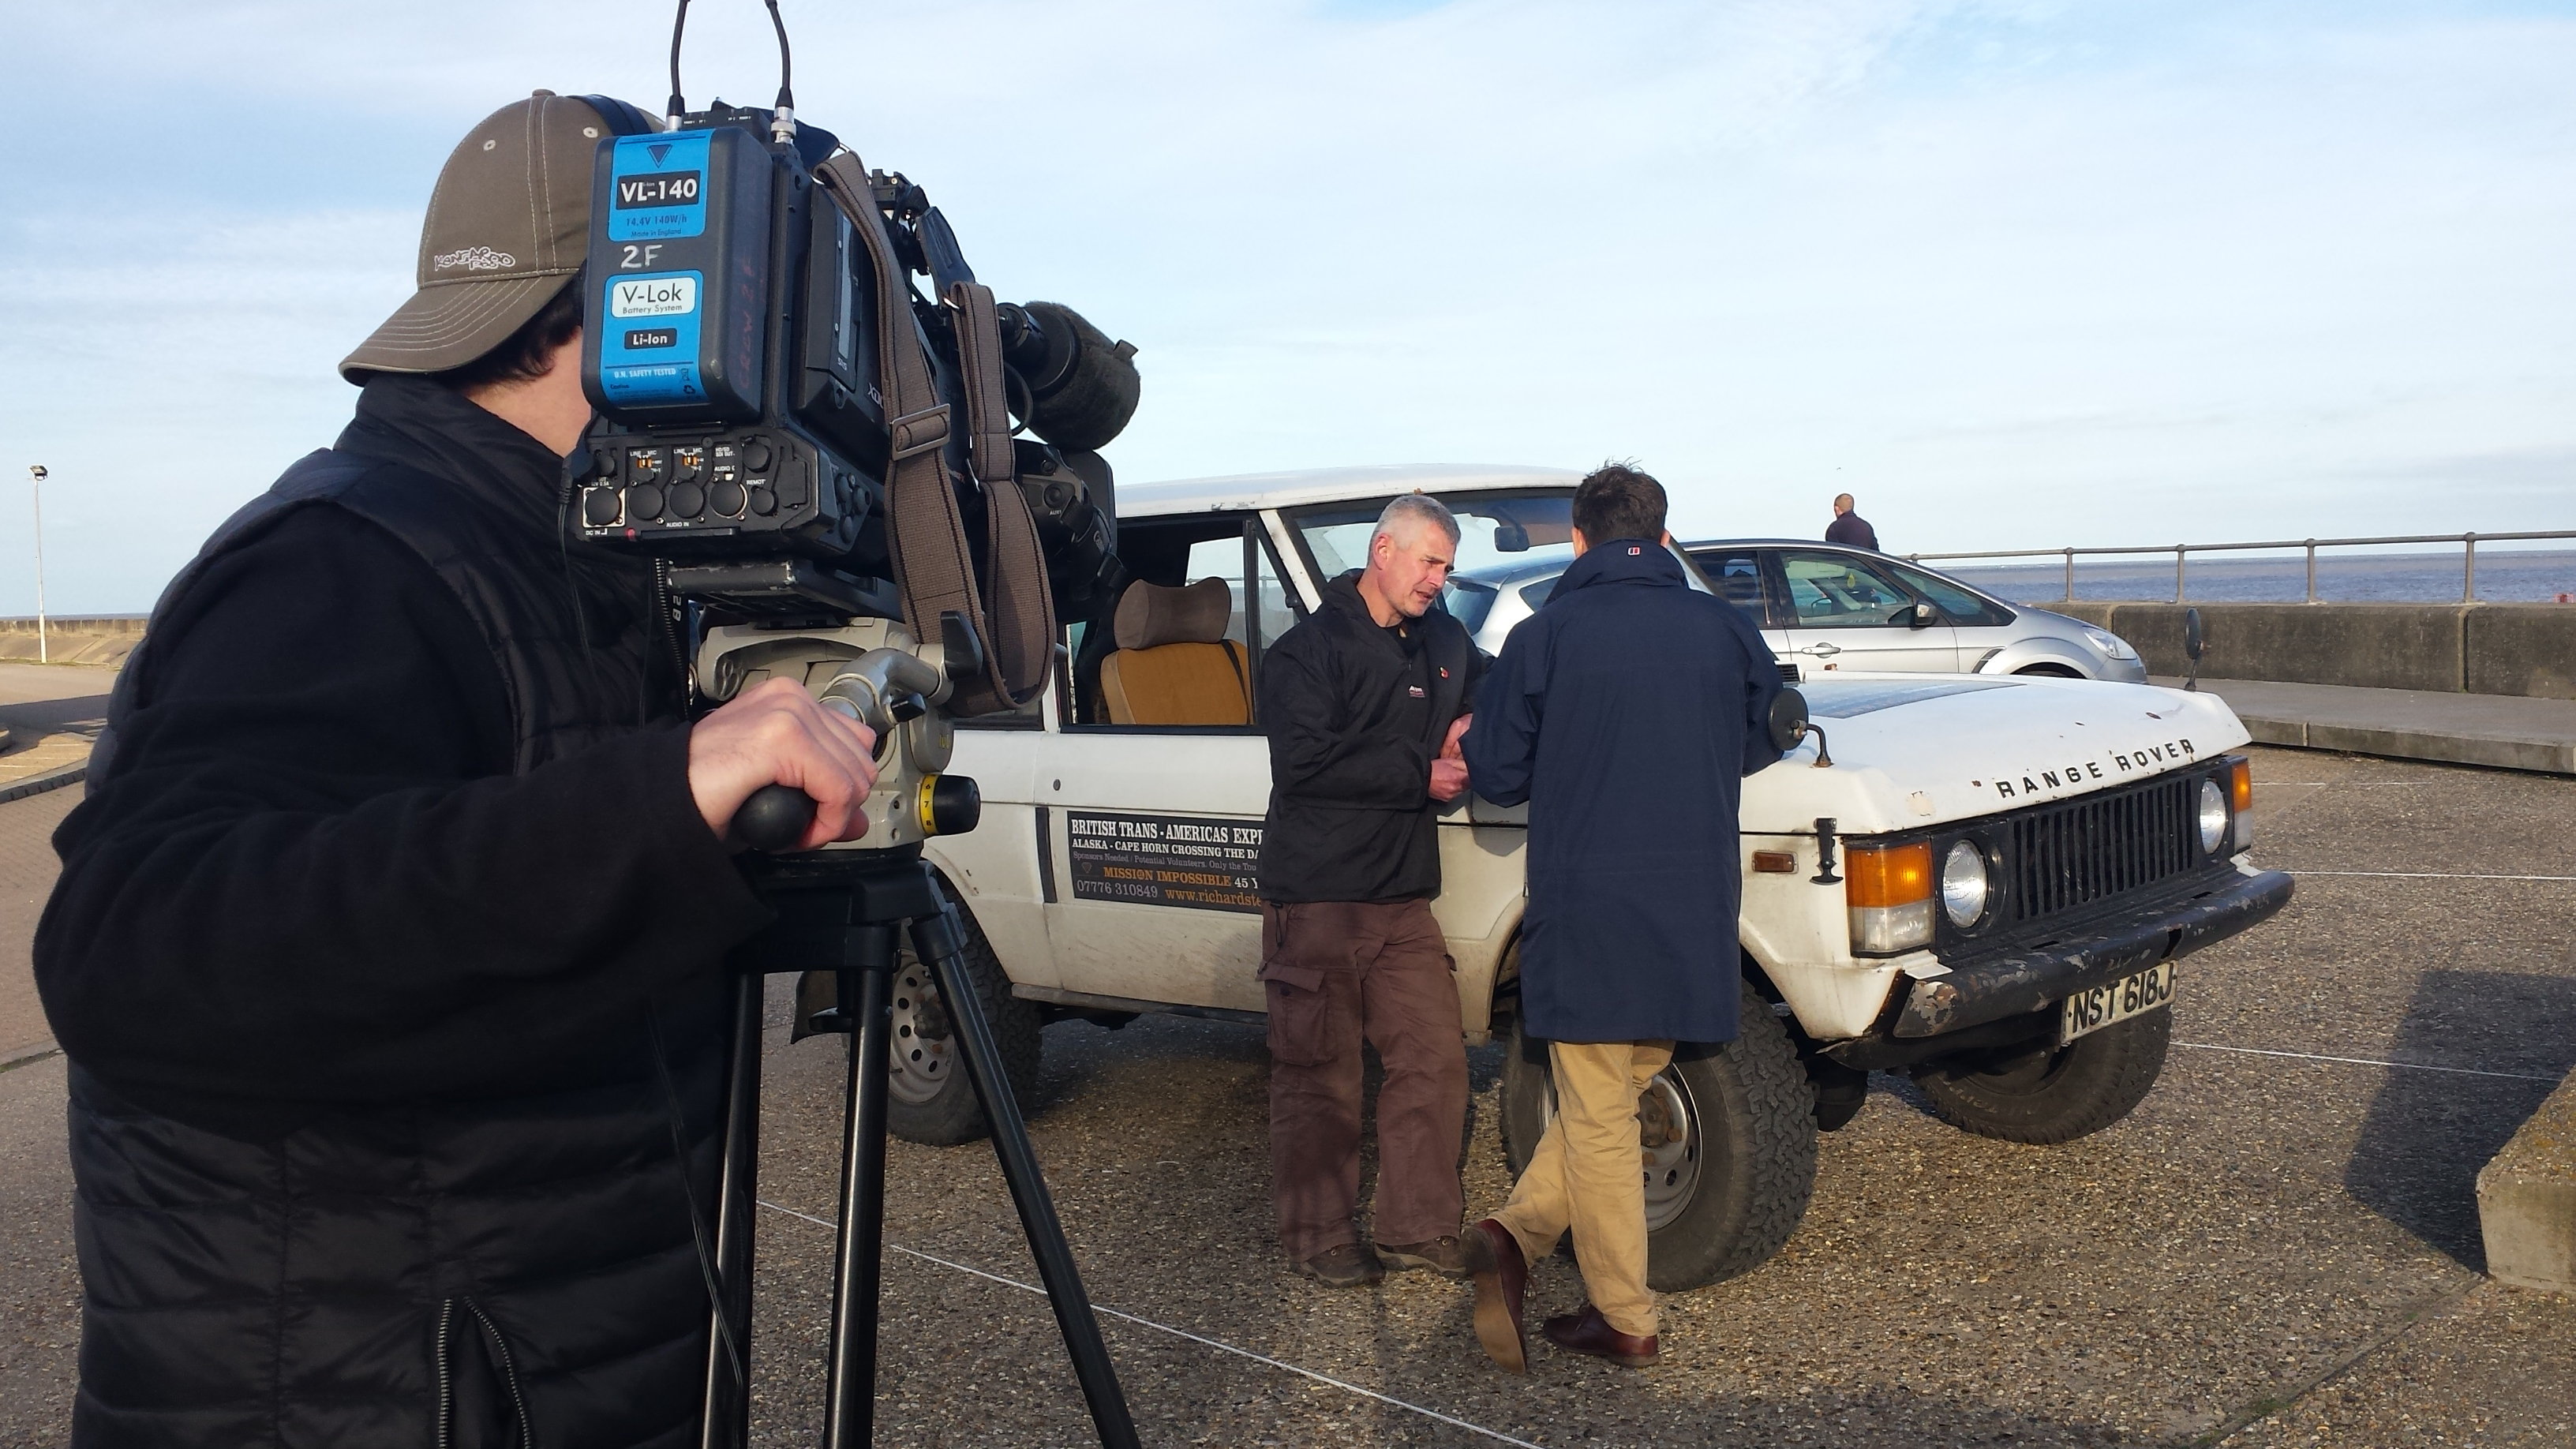 BBC Look East team Alex Dunlop and cameraman Joe interview Richard after completion of UK FULL CIRCLE 2015